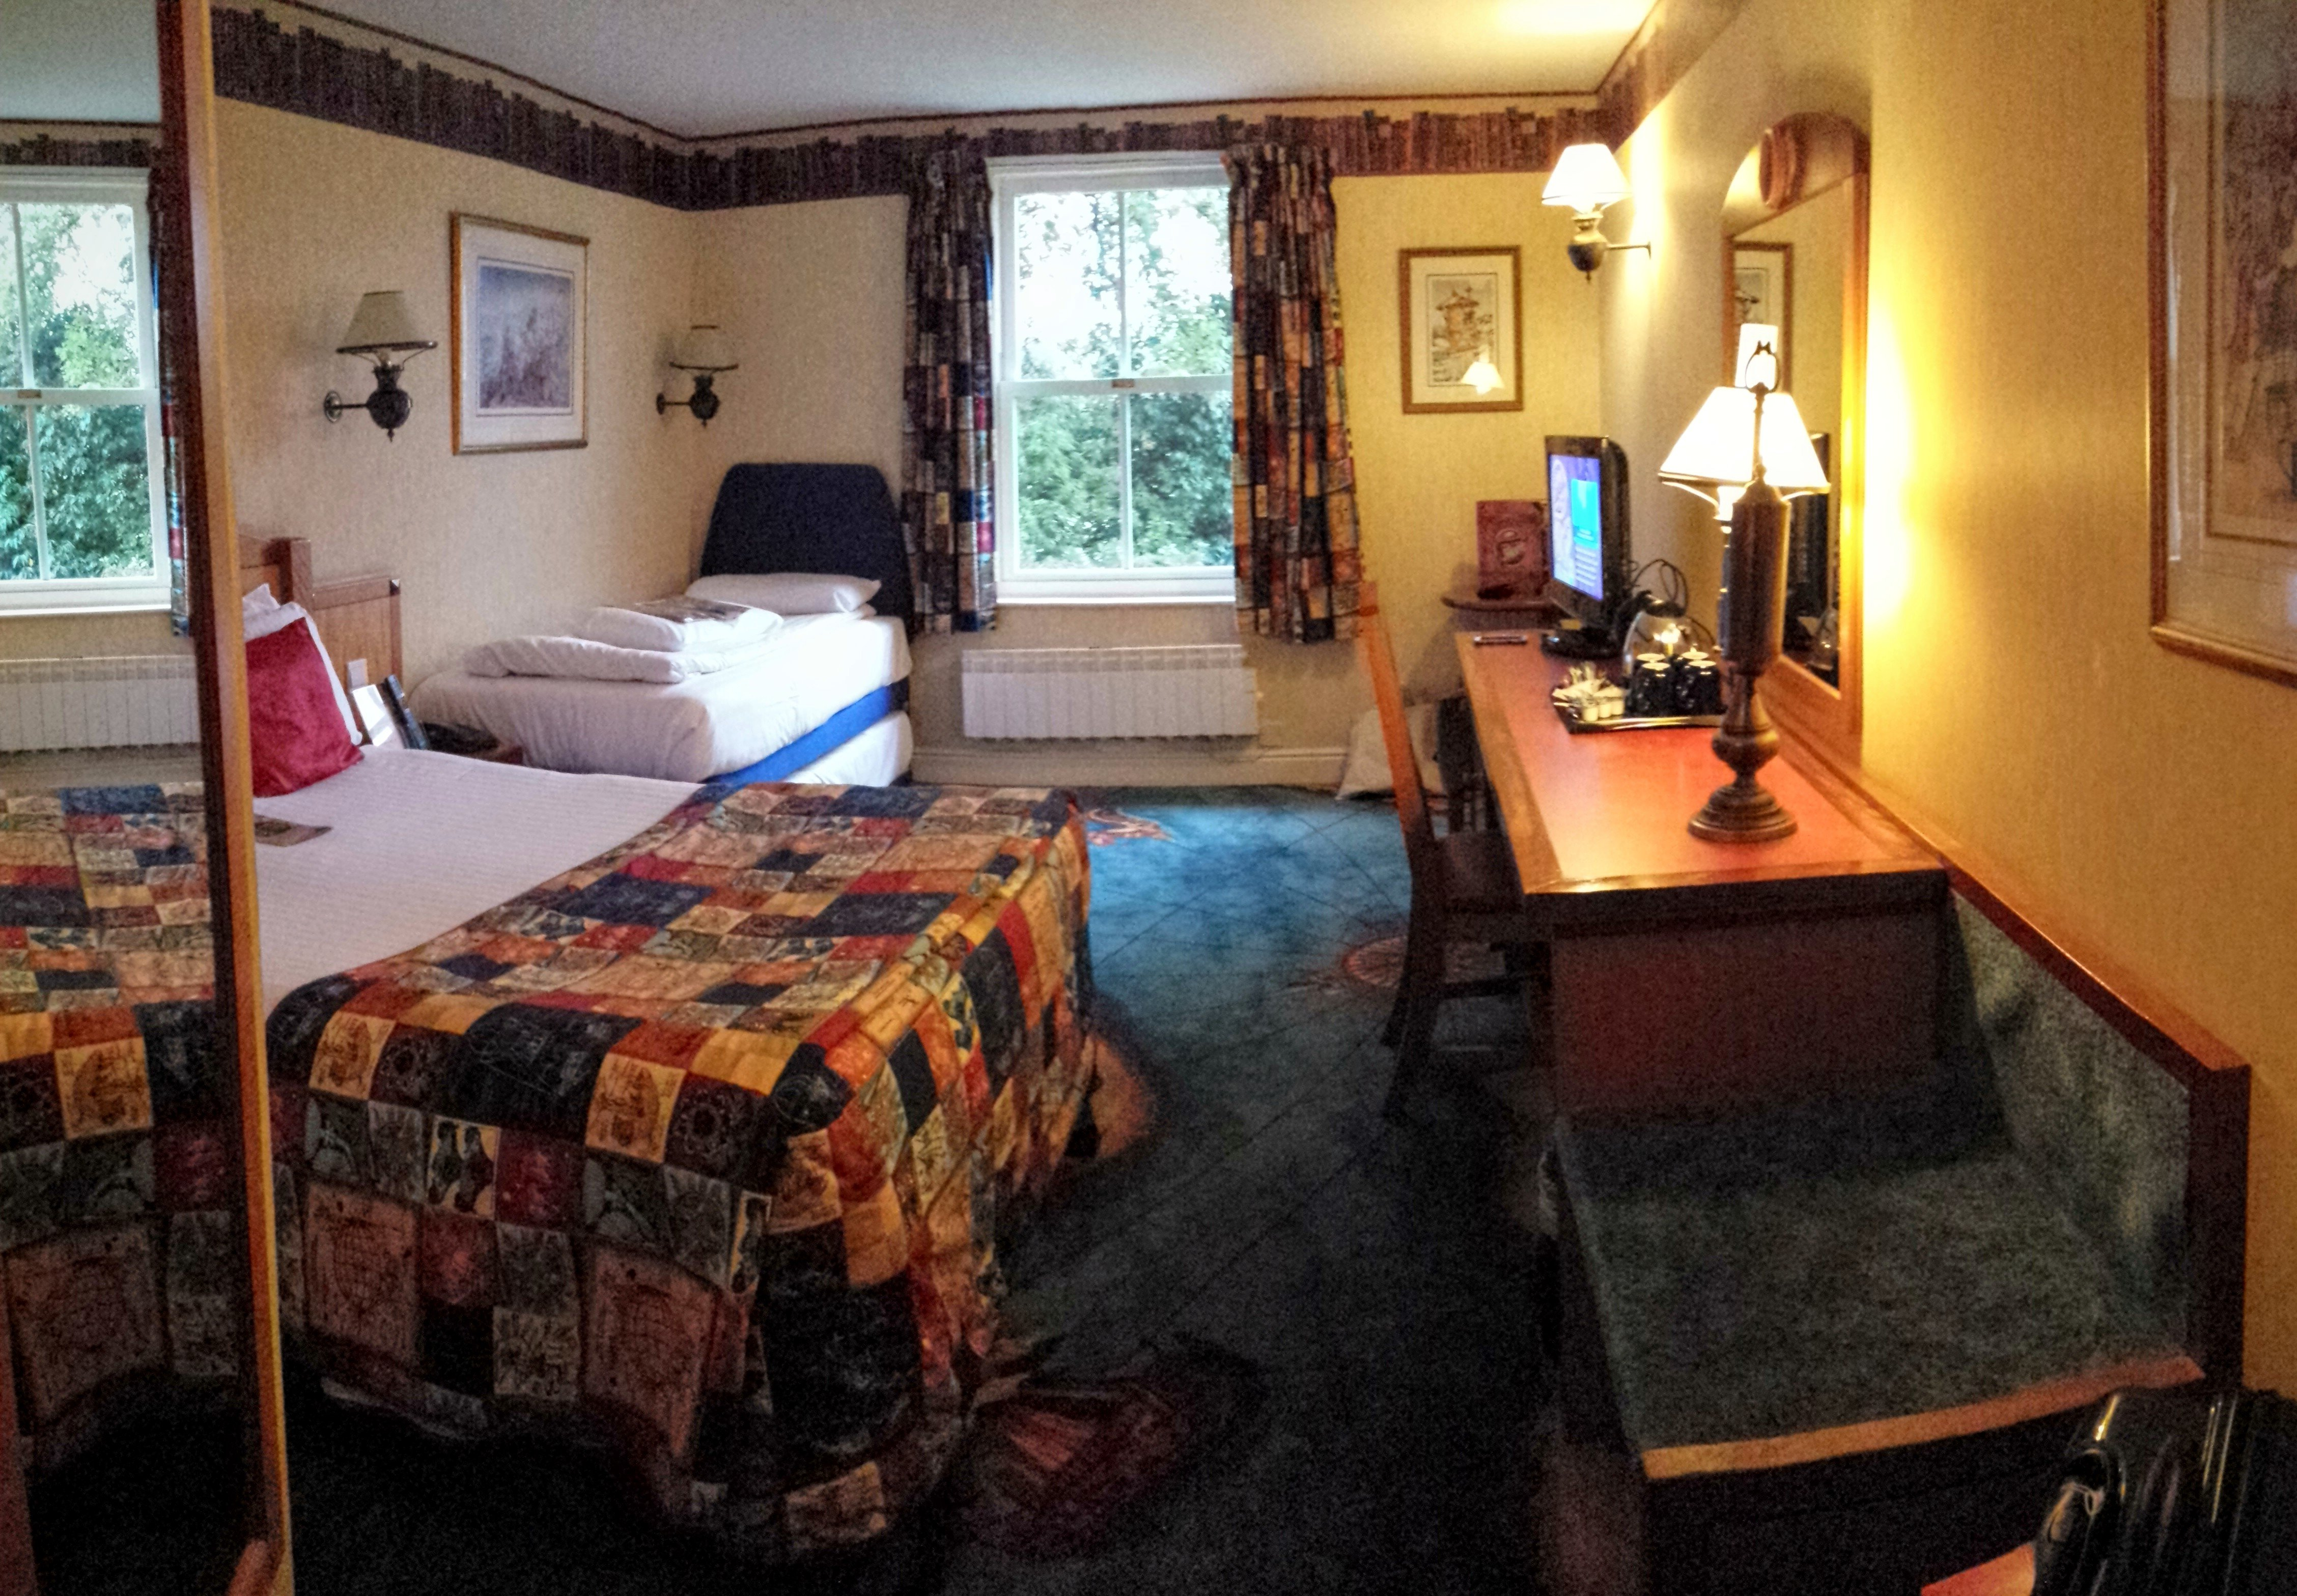 A standard room in alton towers hotel